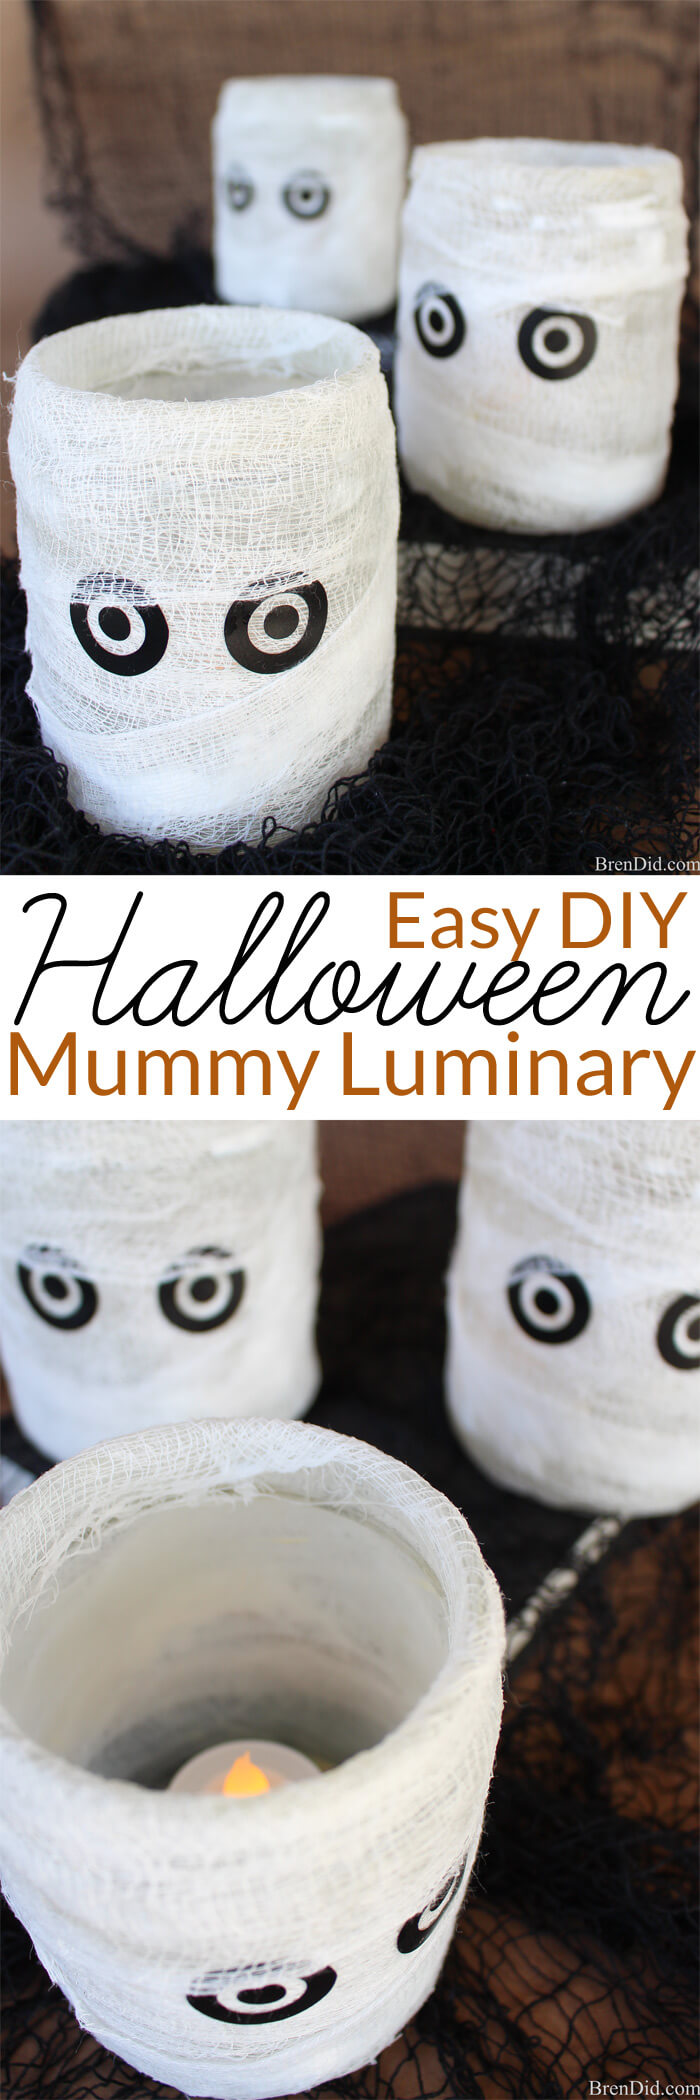 Mummy Luminary Easy Homemade Halloween Decoration Homemade - Homemade Halloween Decorations